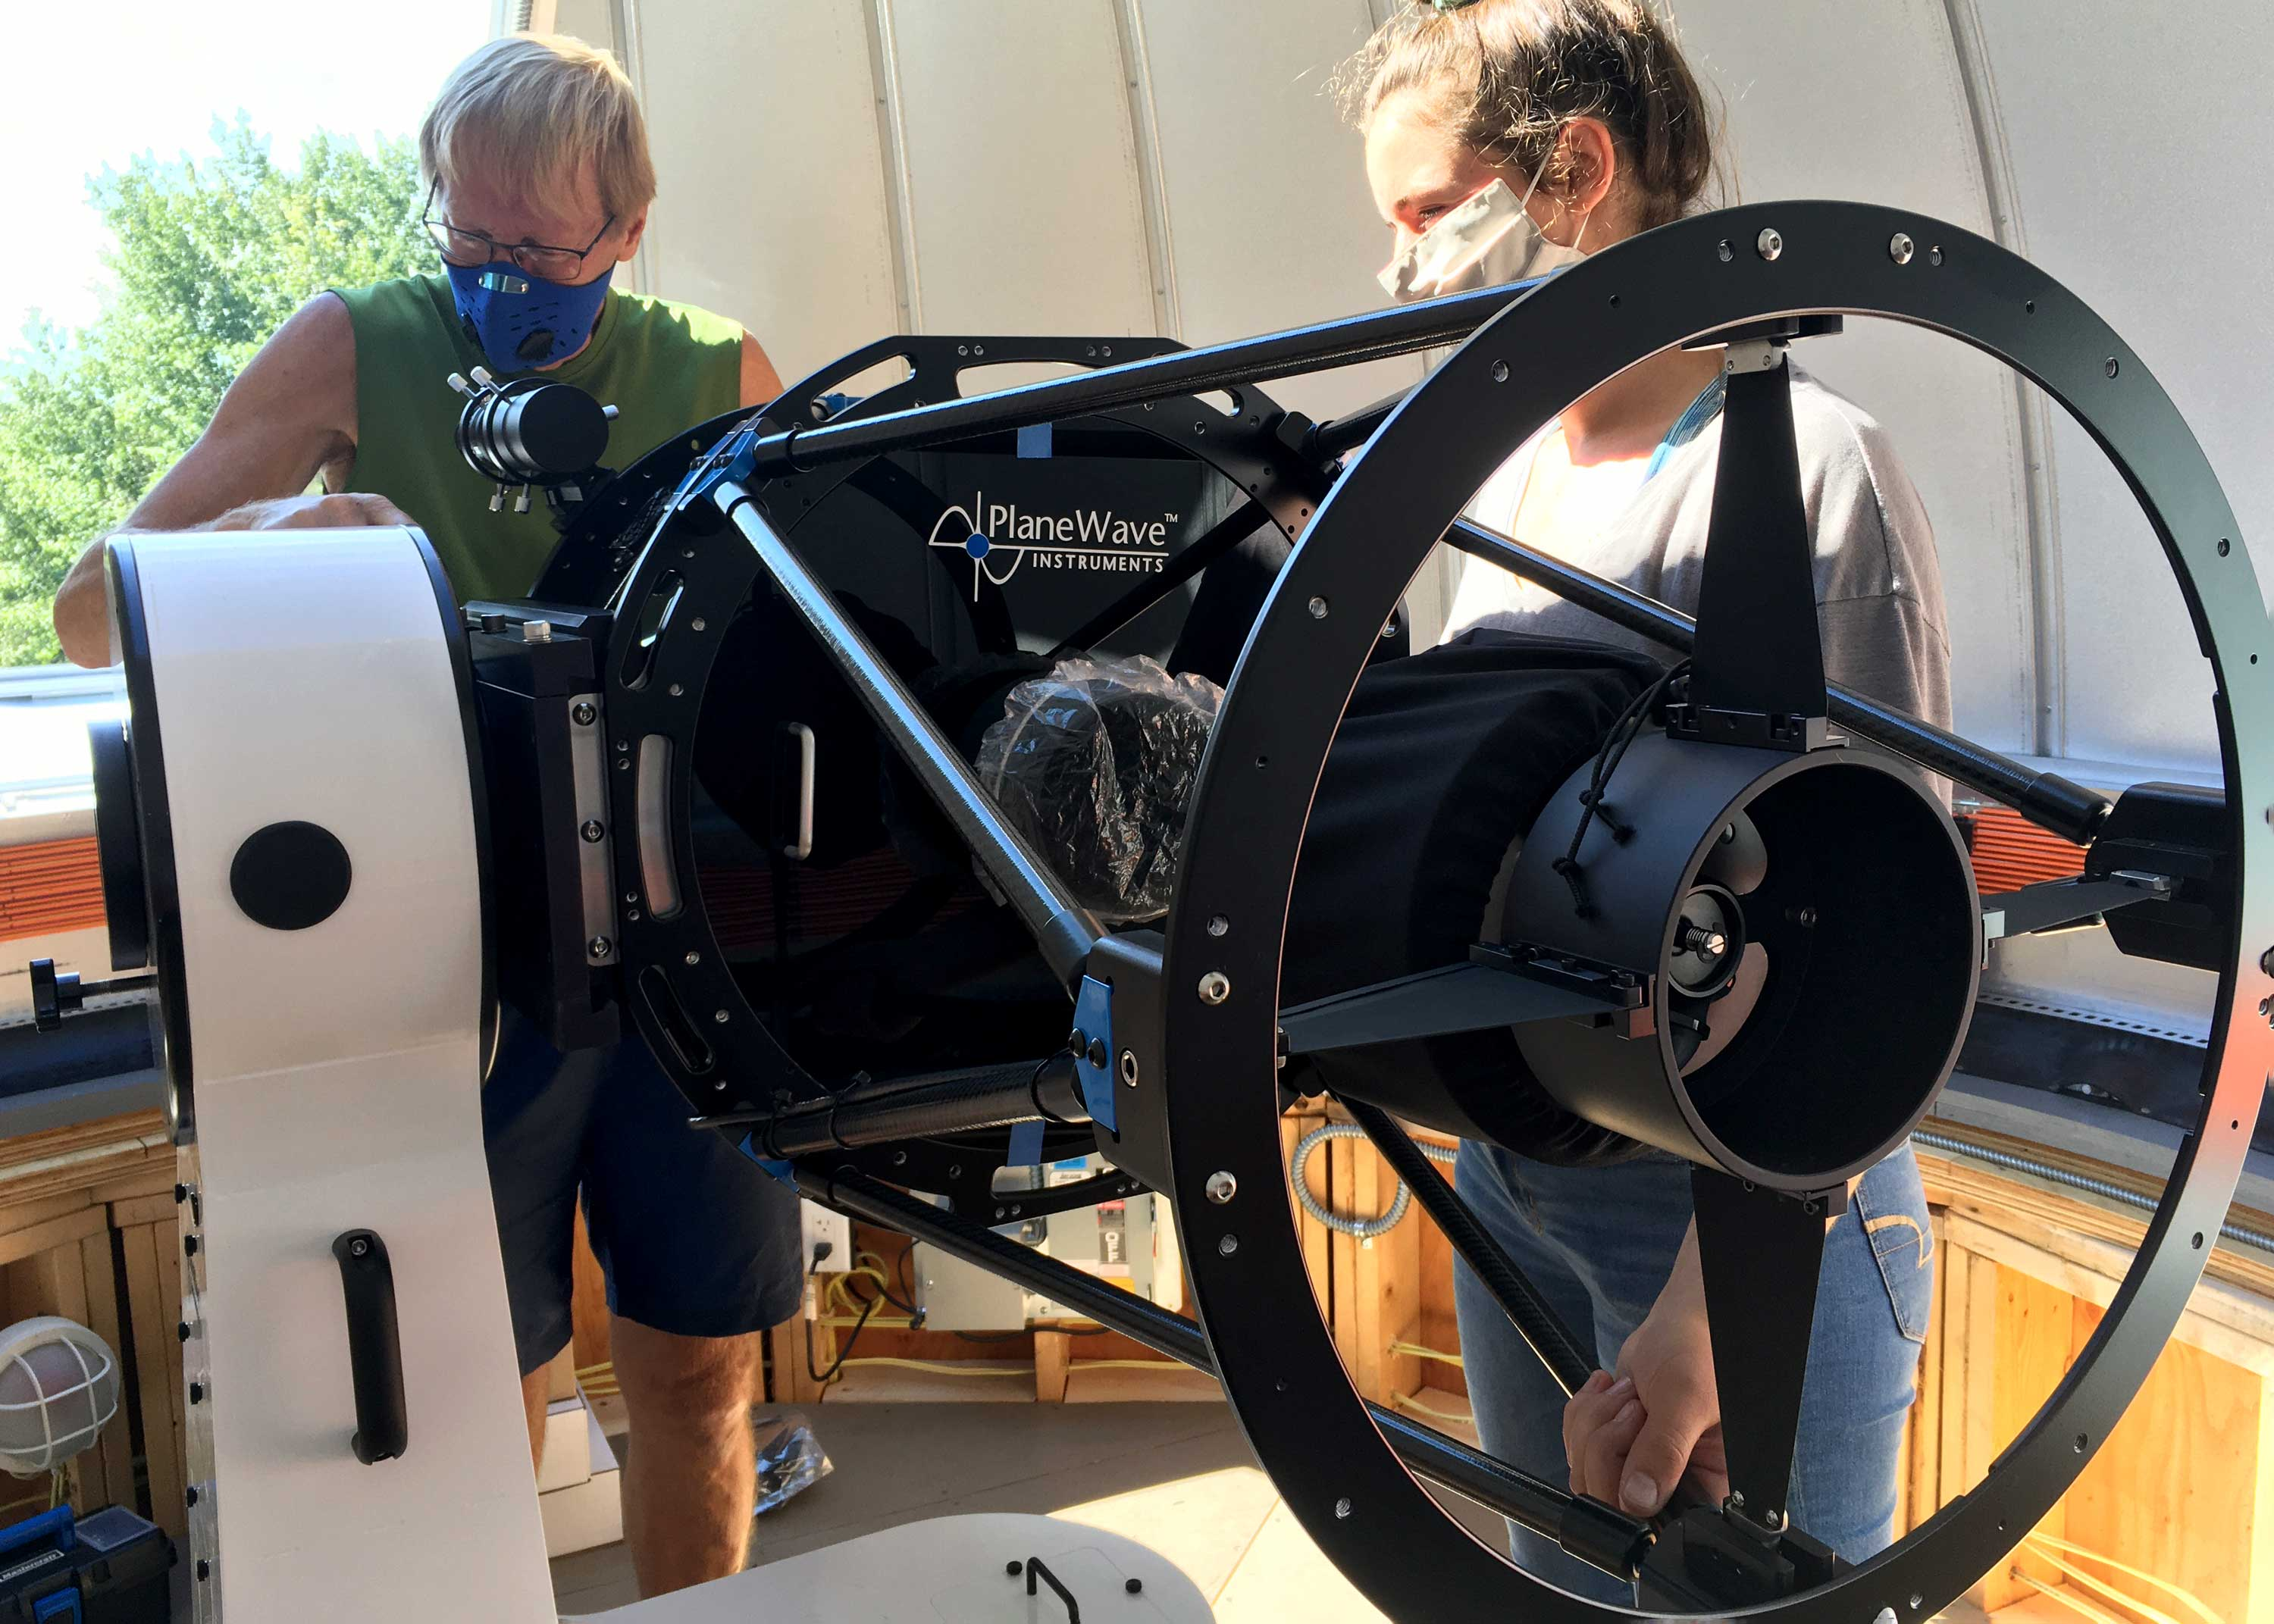 fine-tuning-the-scope-august-21-2020_gerhard-and-rae-secondary-5x7-3000px.jpg